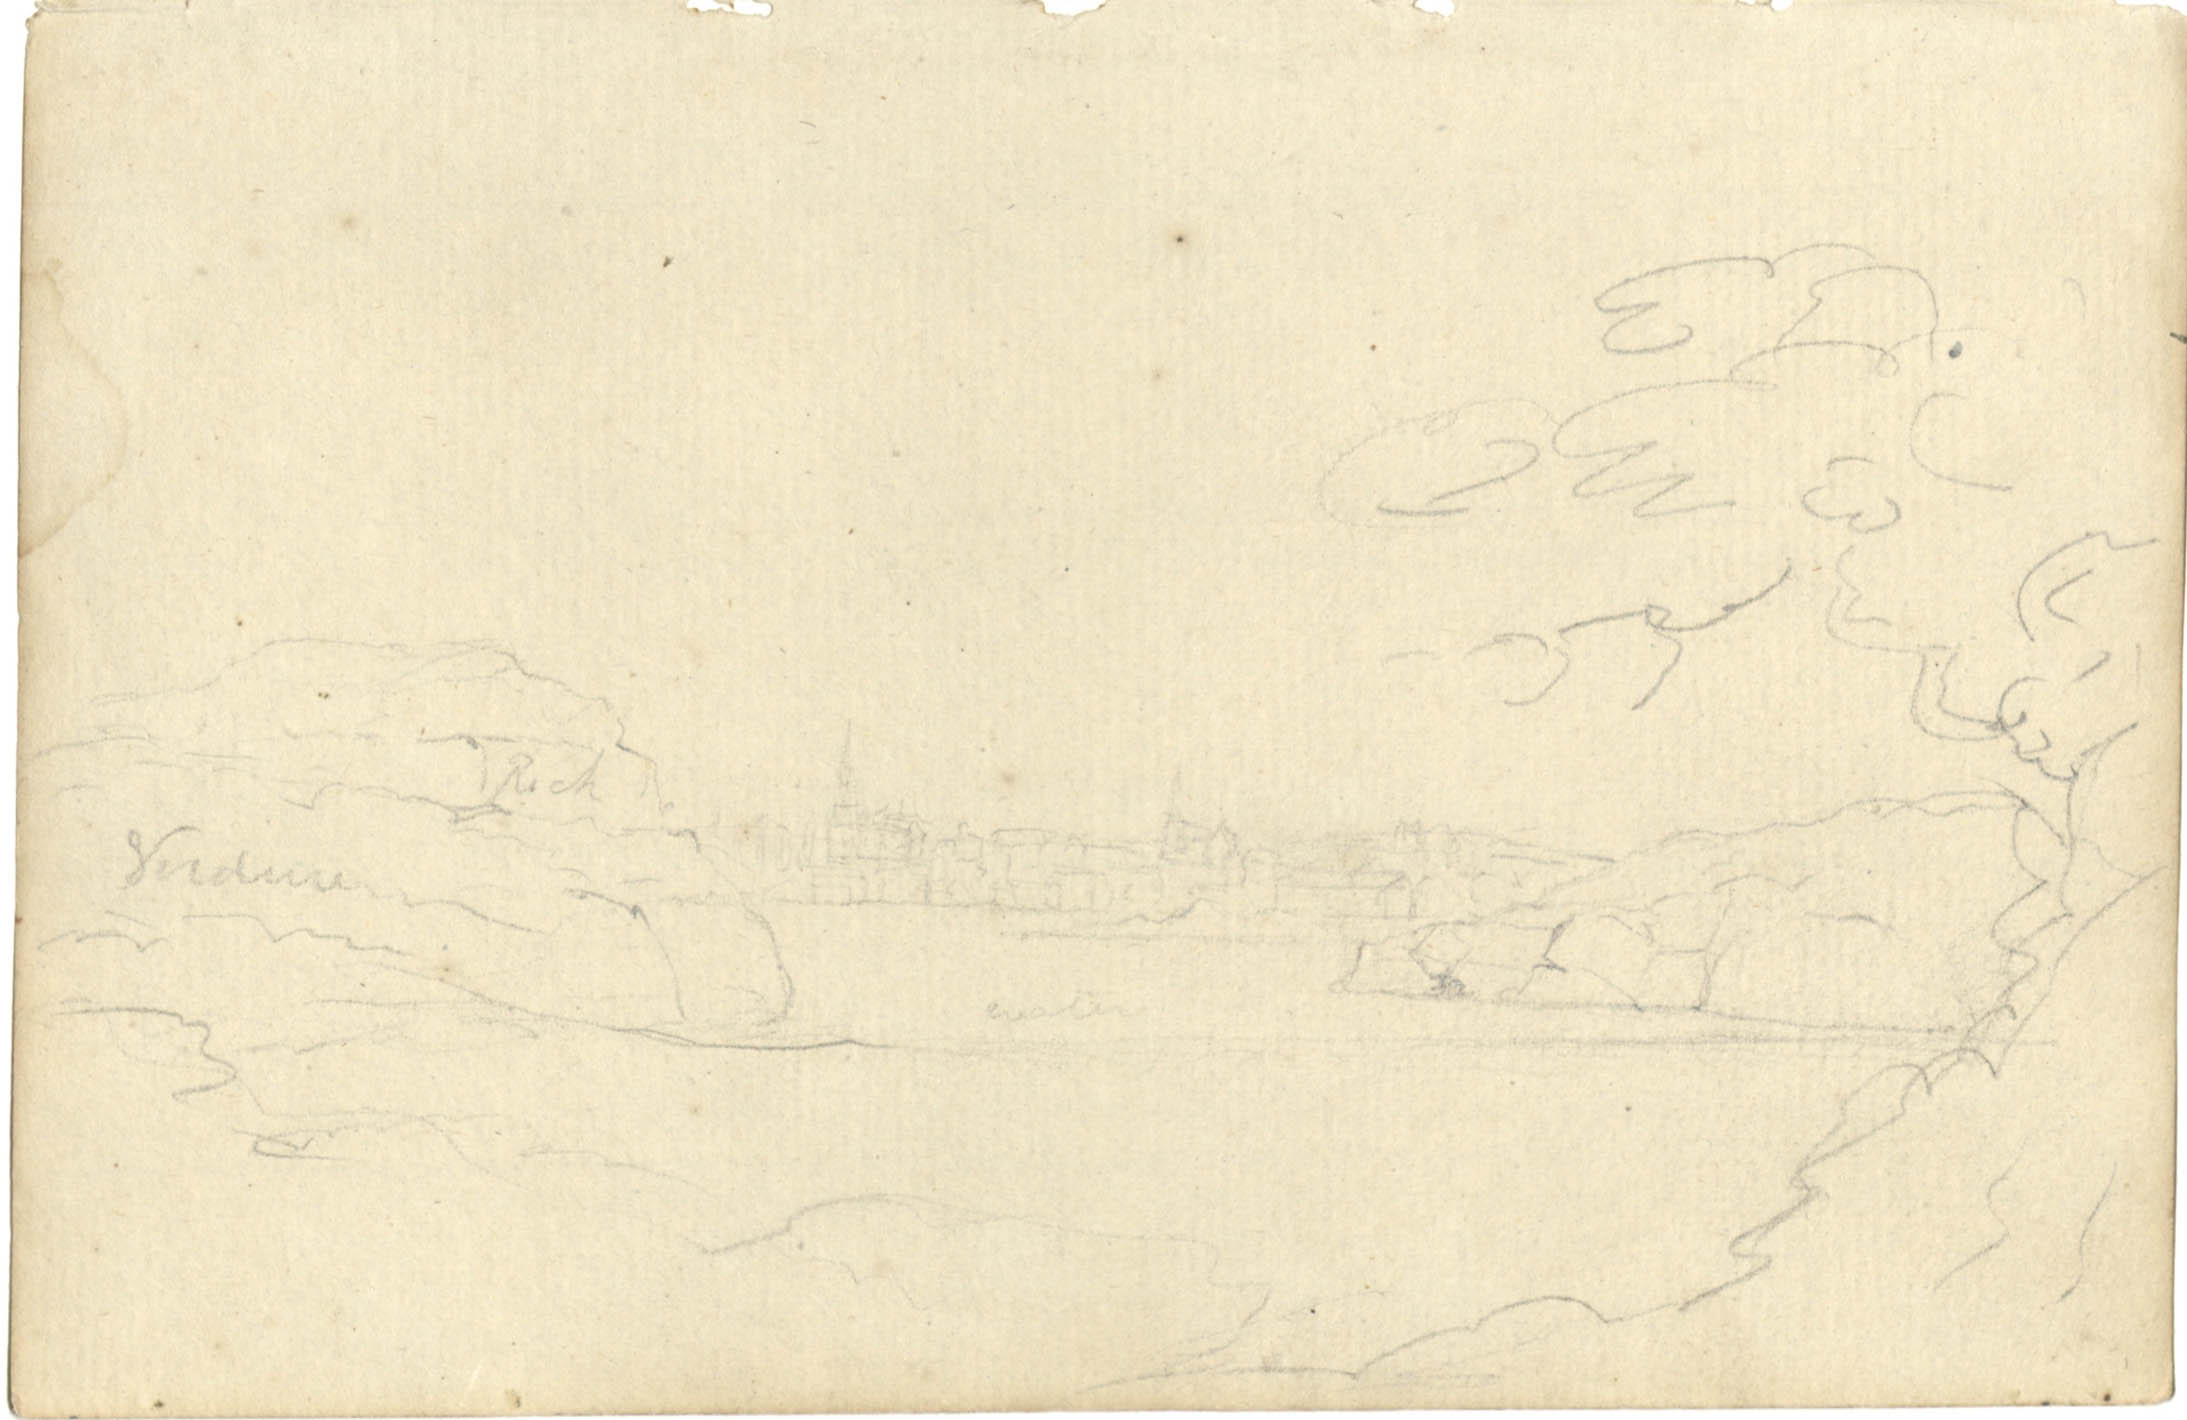 Sketch of distant cityscape